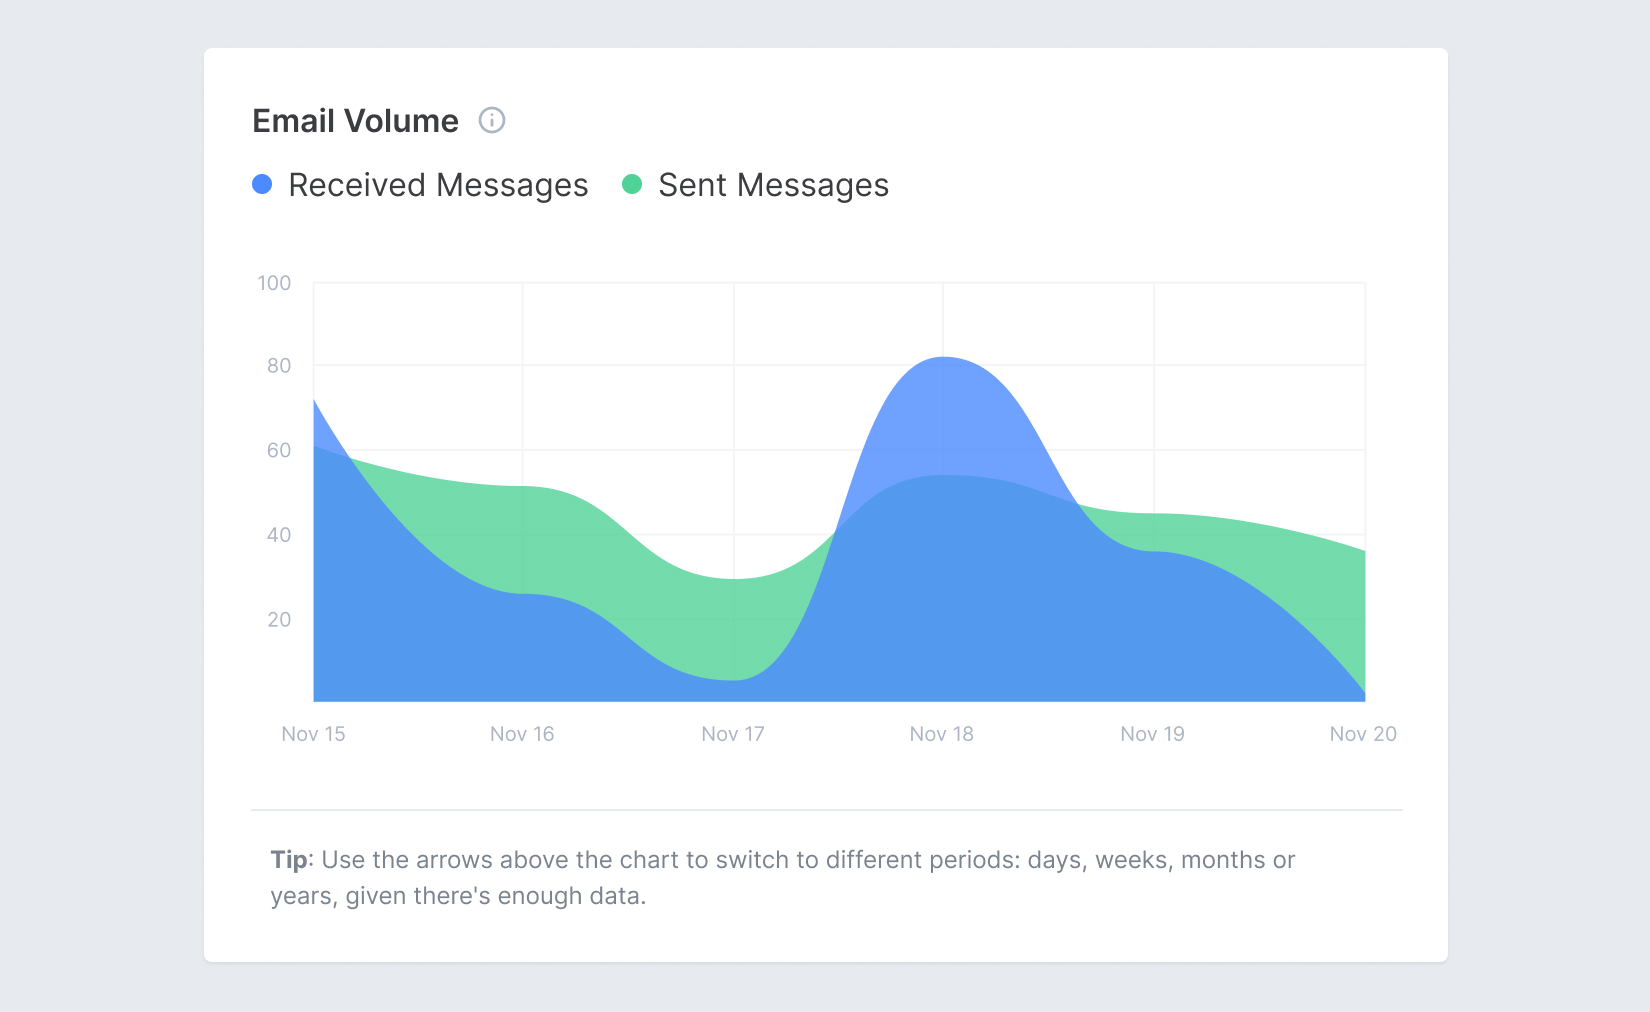 Screenshot of Email Meter, showing analytics and statistics about Email Volume